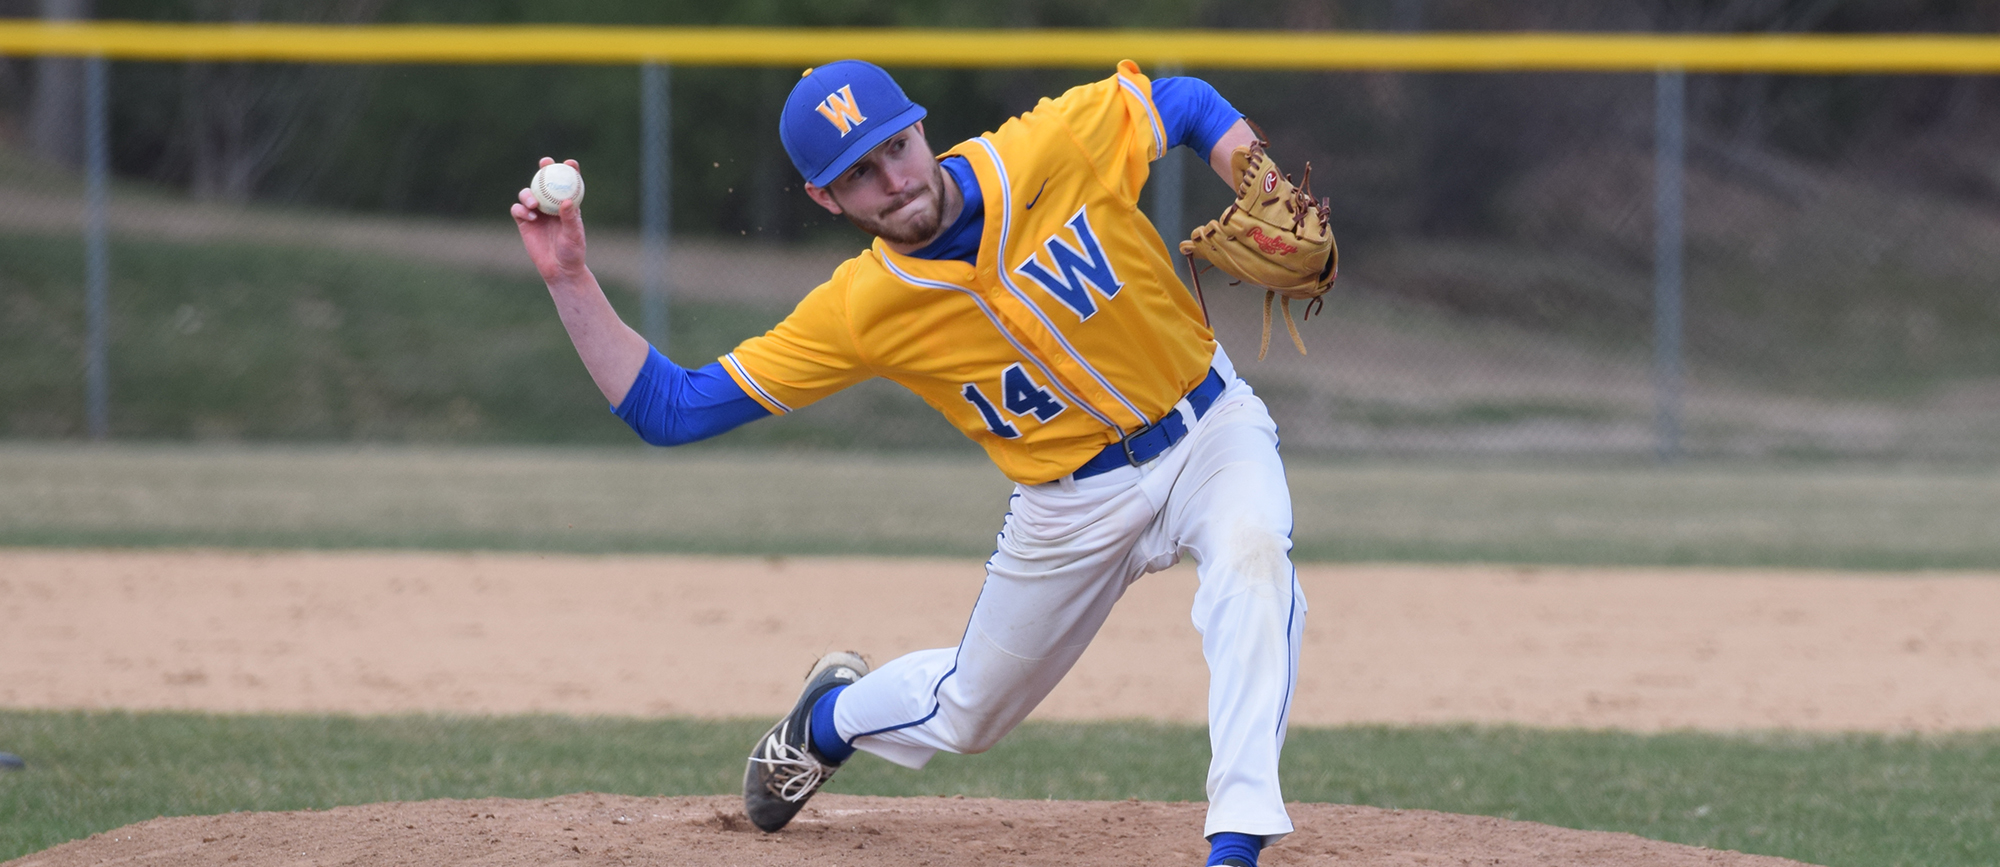 Sophomore Patrick Westerlind retired all four batters he faced, including two by strikeout, in the Golden Bears 7-6 win over Keene State on Wednesday. (Photo by Rachael Margossian)